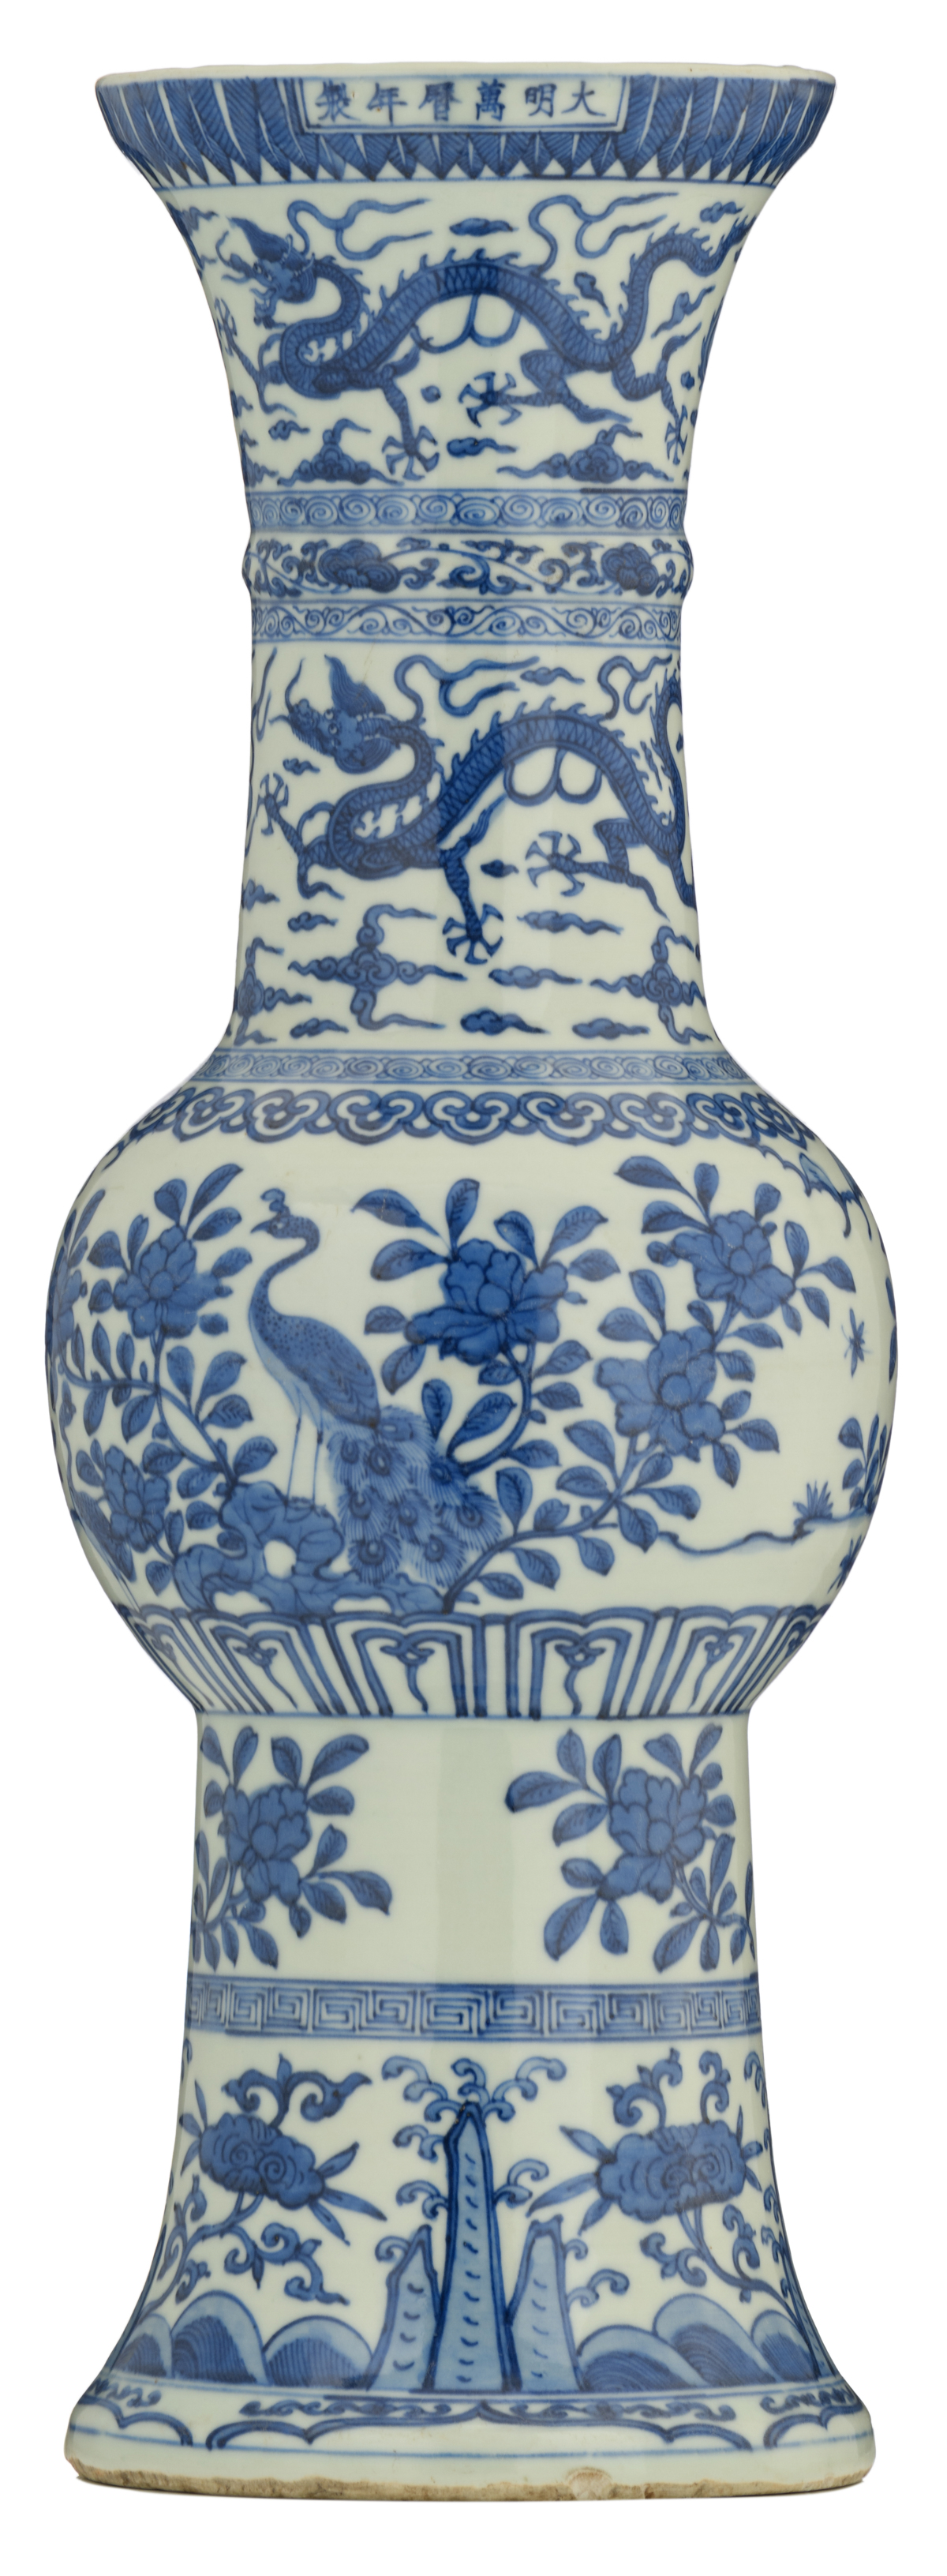 Lot 56 - A Chinese blue and white yenyen vase, the center decorated with peacocks and flower branches, the